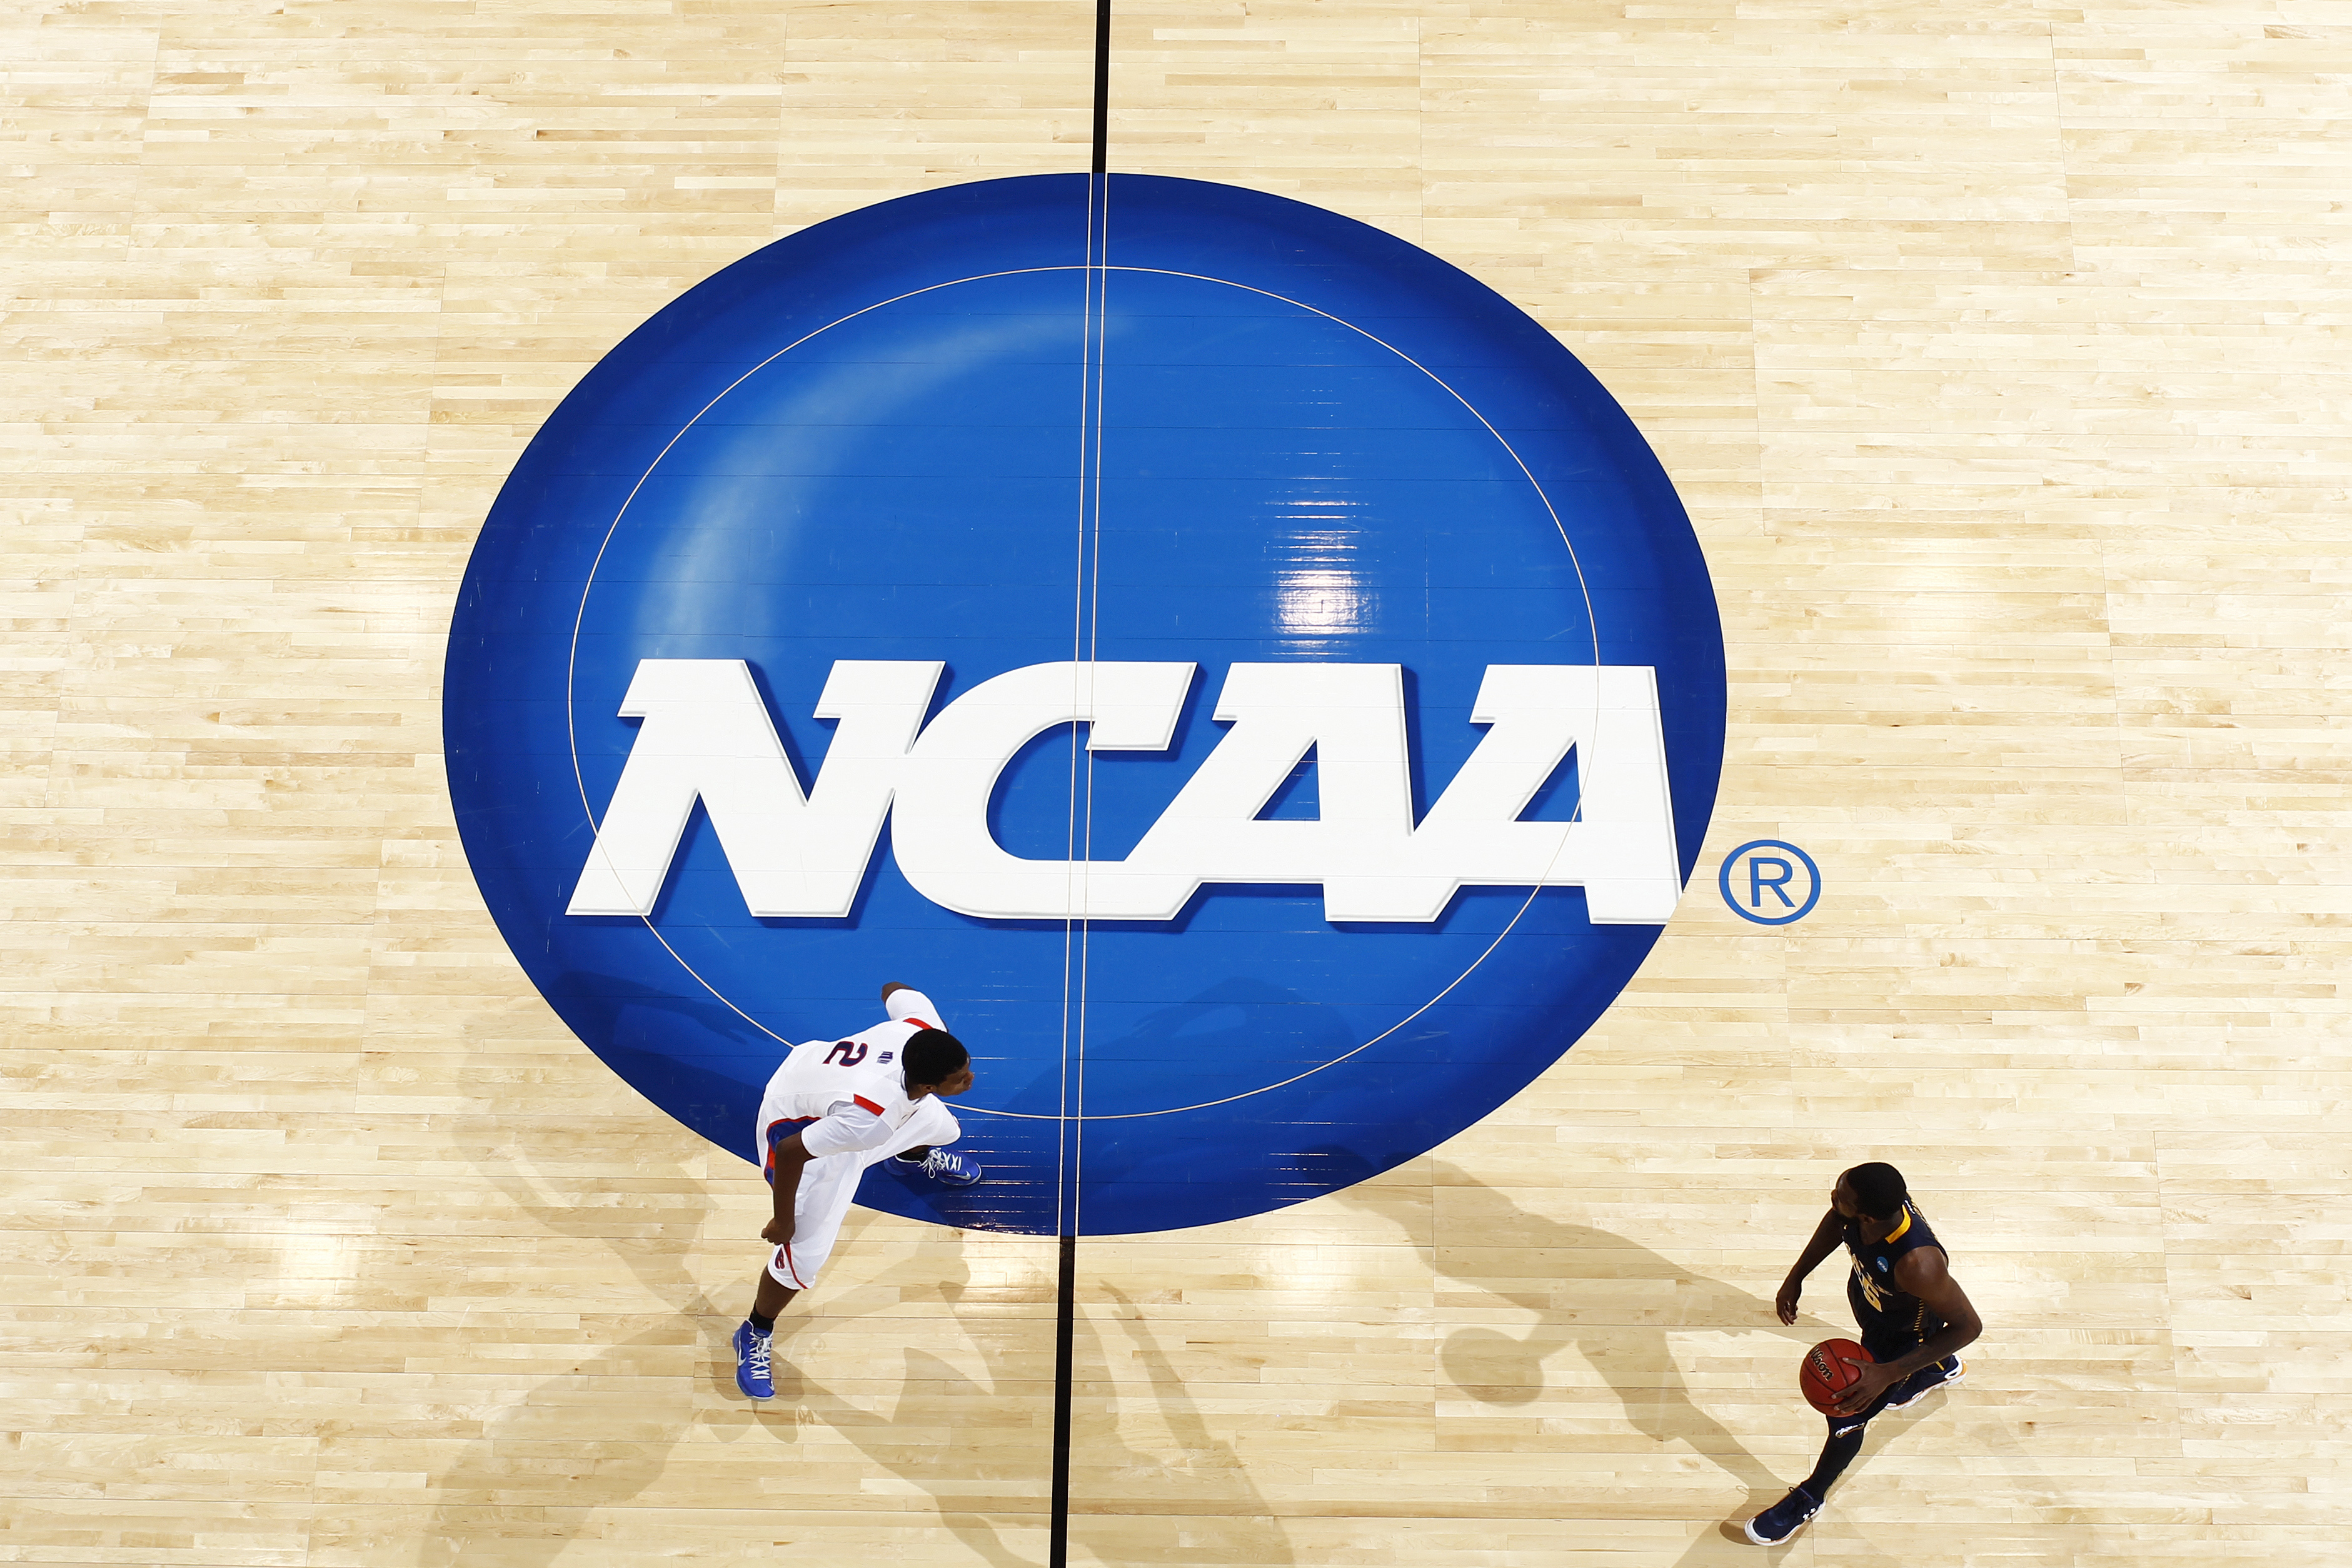 General view of the NCAA logo on the floor during action at University of Dayton Arena on March 20, 2013 in Dayton, Ohio.